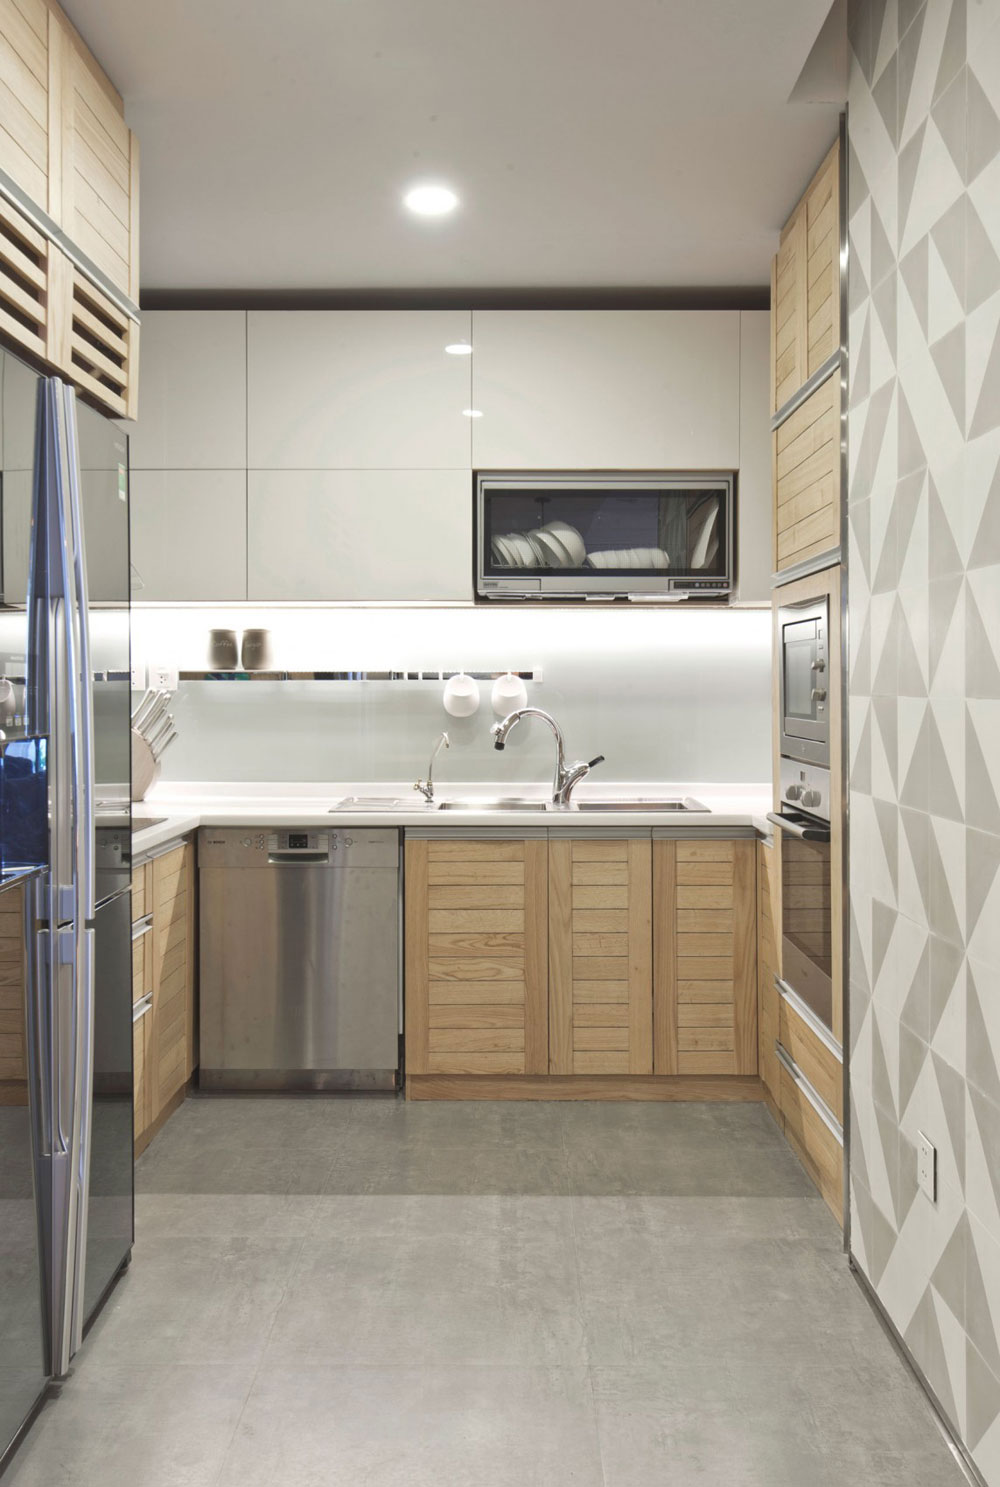 Plan For Your Next Kitchen Project Using These Kitchen Interior Pictures 9 Plan For Your Next Kitchen Project Using These Kitchen Interior Pictures